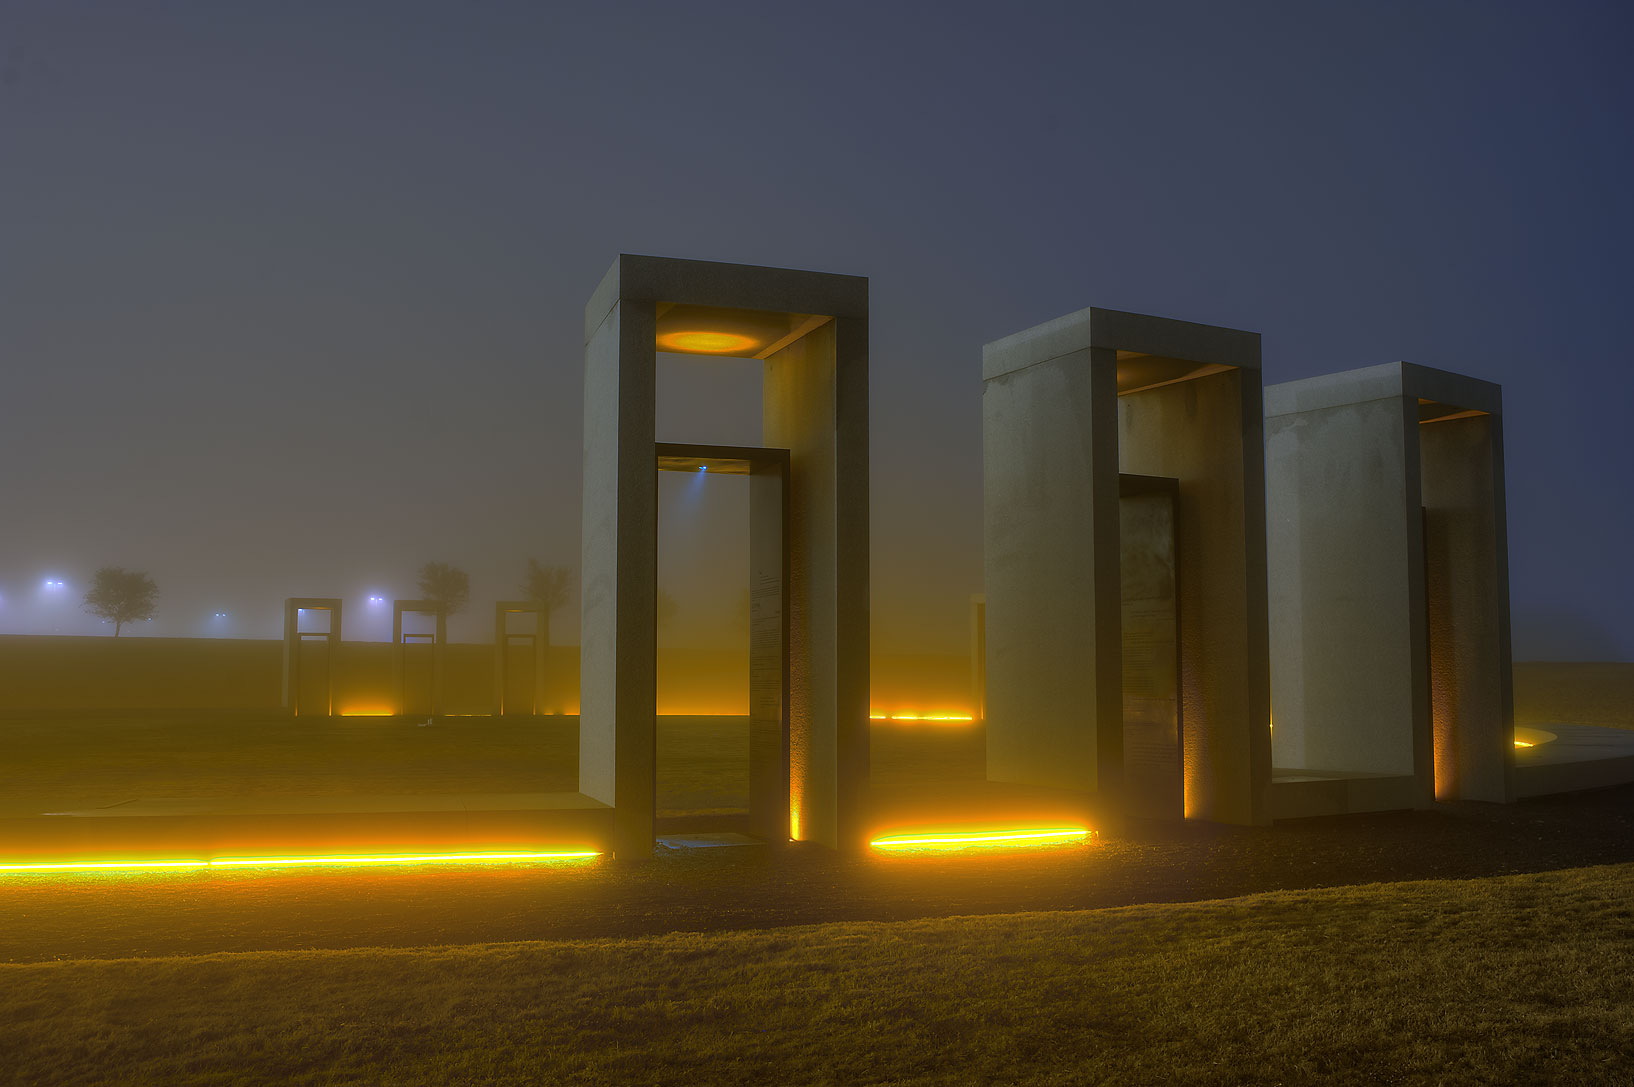 Spirit Ring of Bonfire memorial on campus of...M University. College Station, Texas